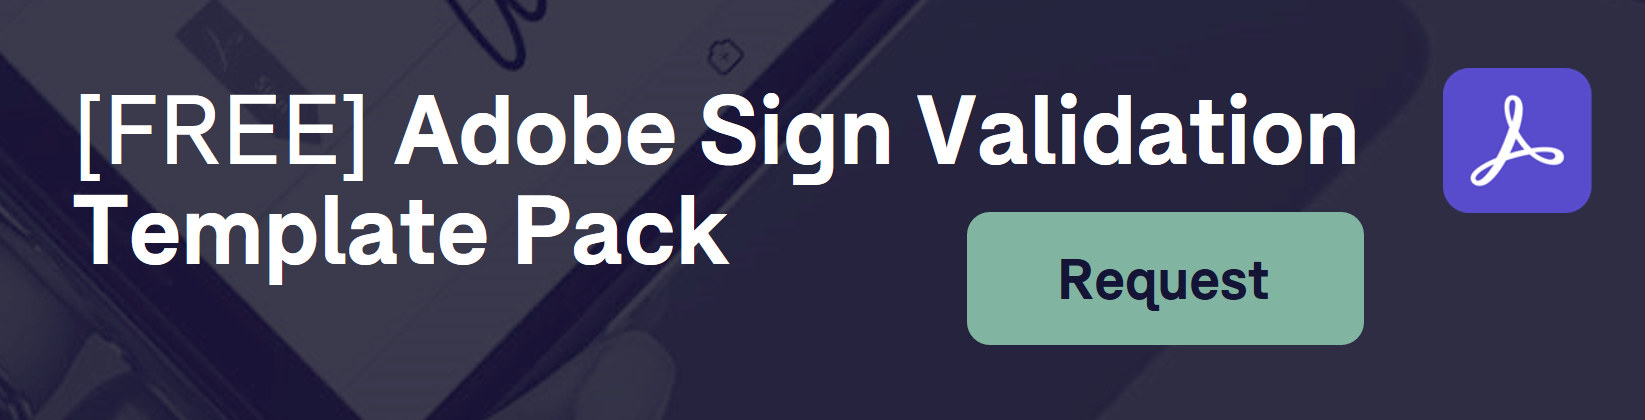 Adobe Sign Validation Template Pack Request